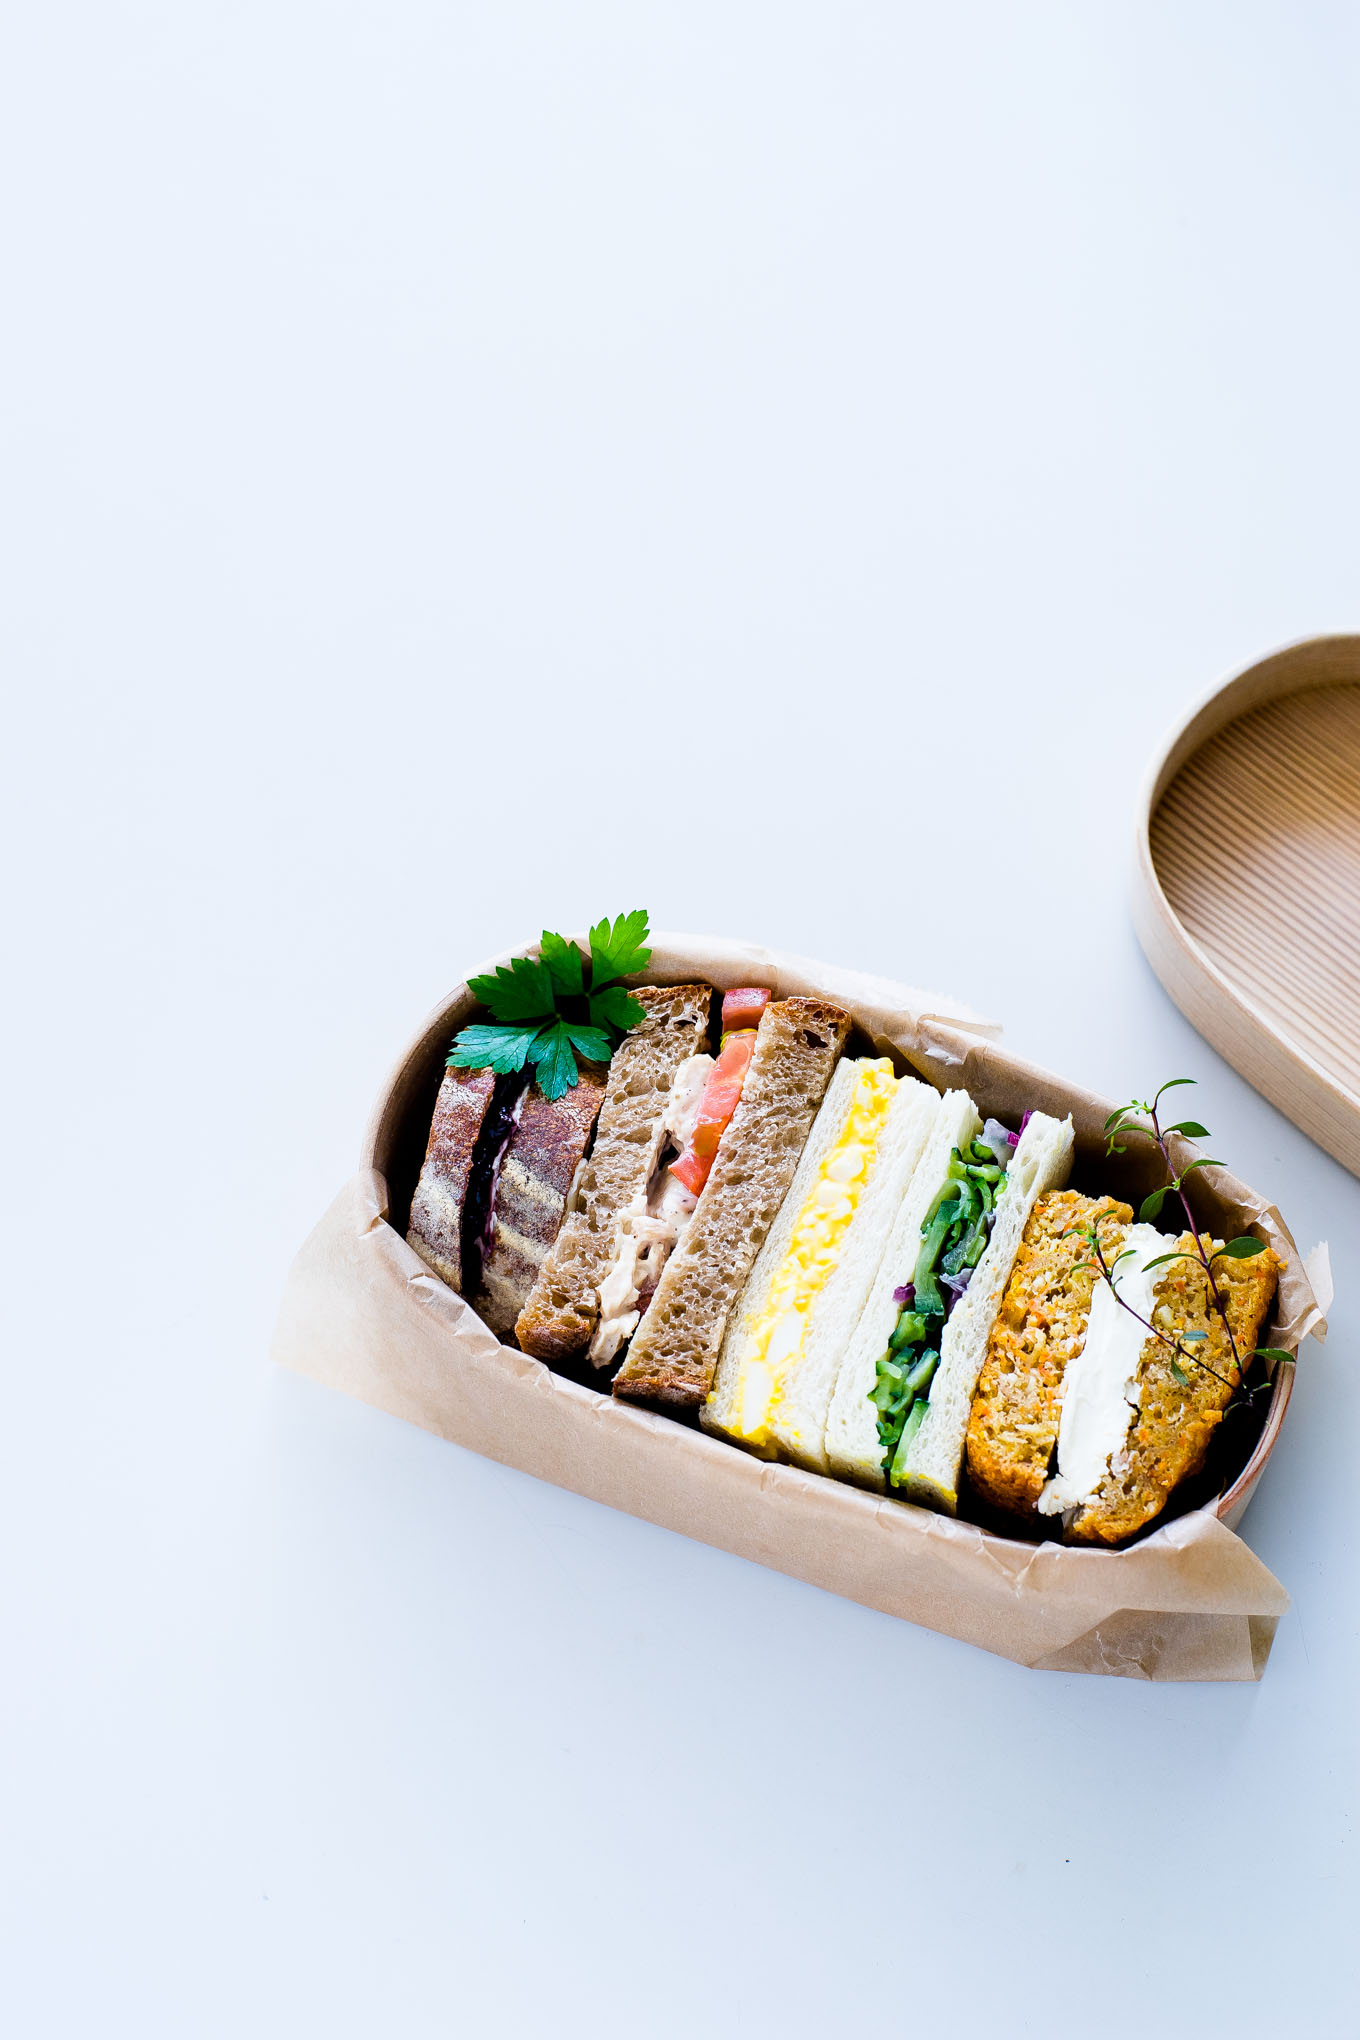 how-to-pack-a-sandwich-in-magewappa-bento-4